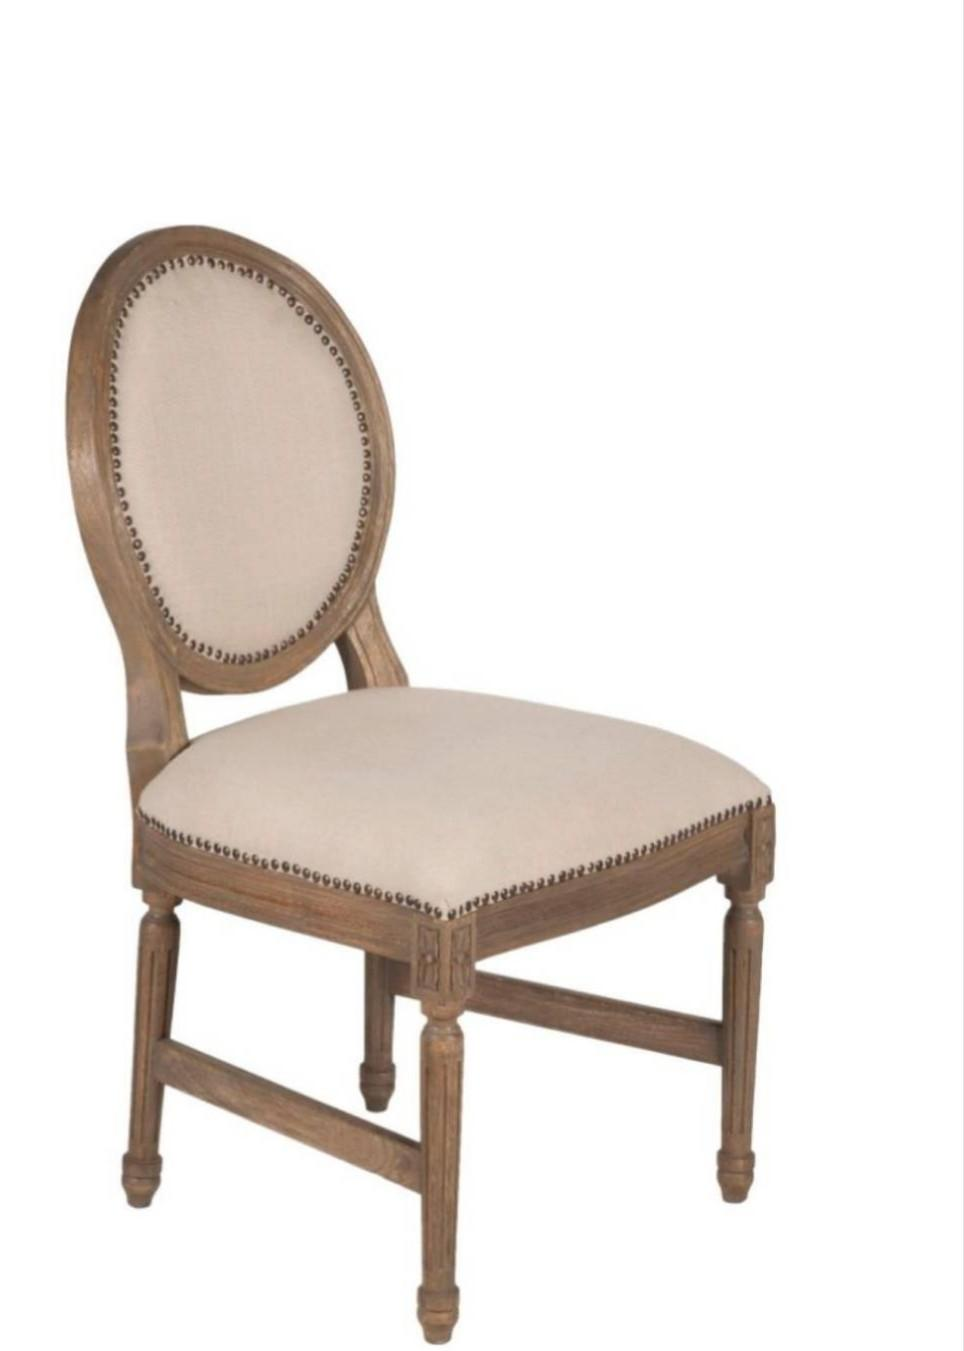 classy wooden chair with comfortable seat